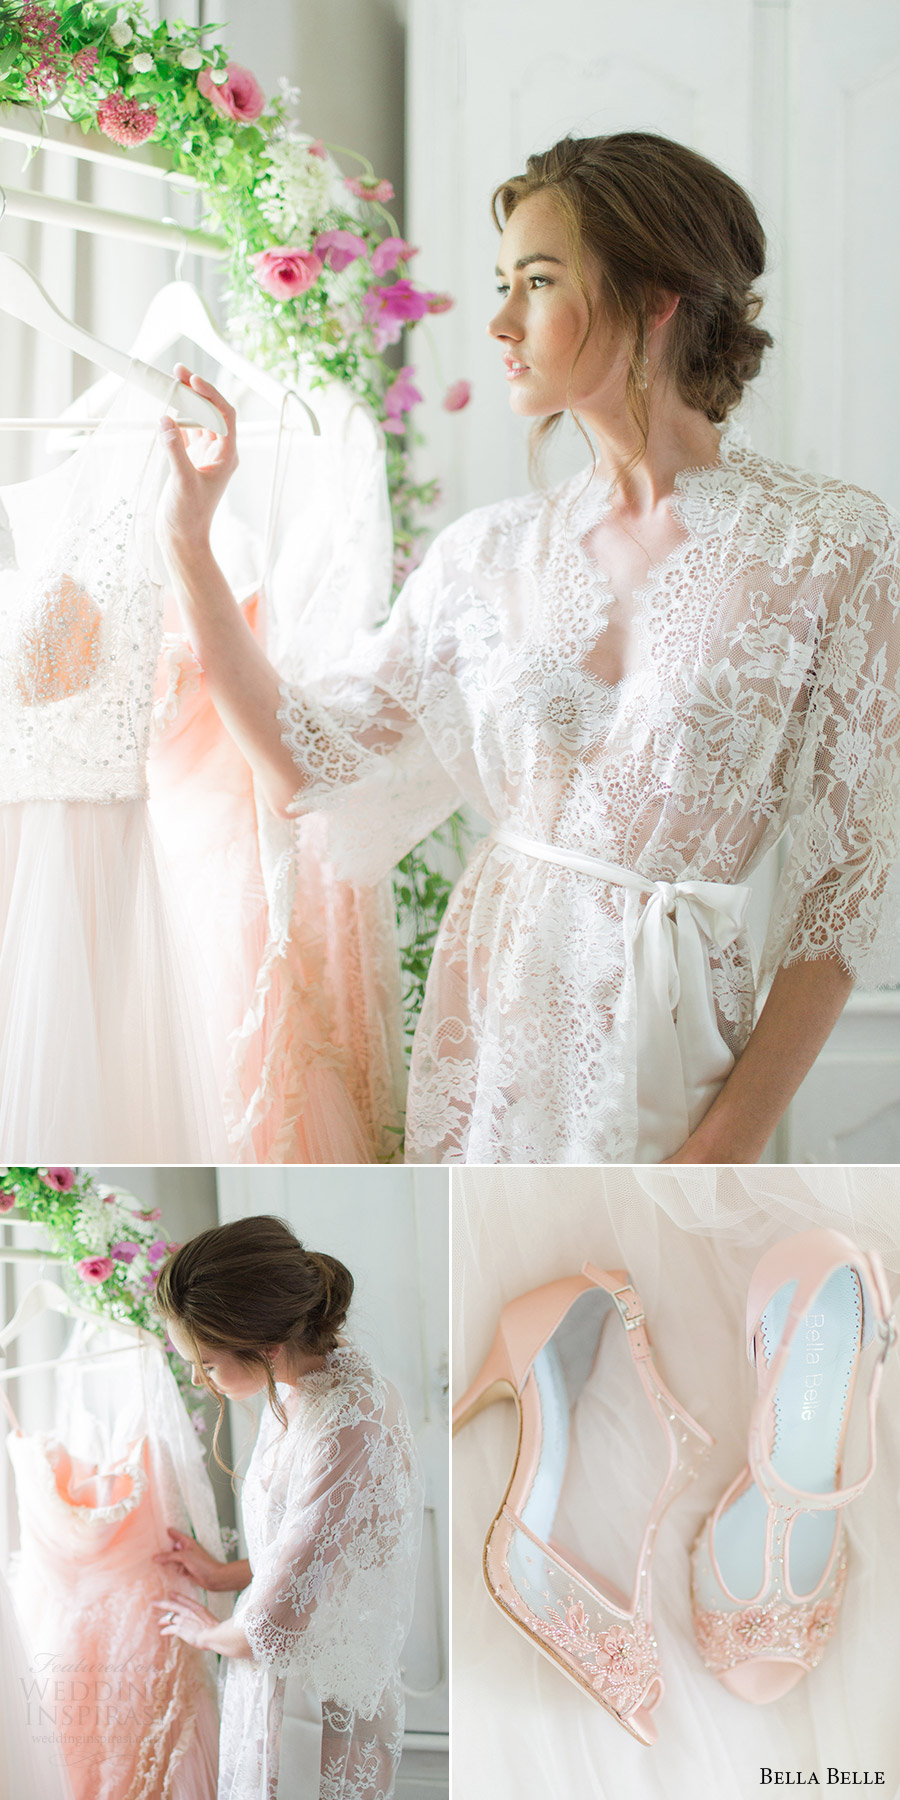 bella belle shoes 2016 rachel may photography blush paloma romantic pink wedding shoes lace robe